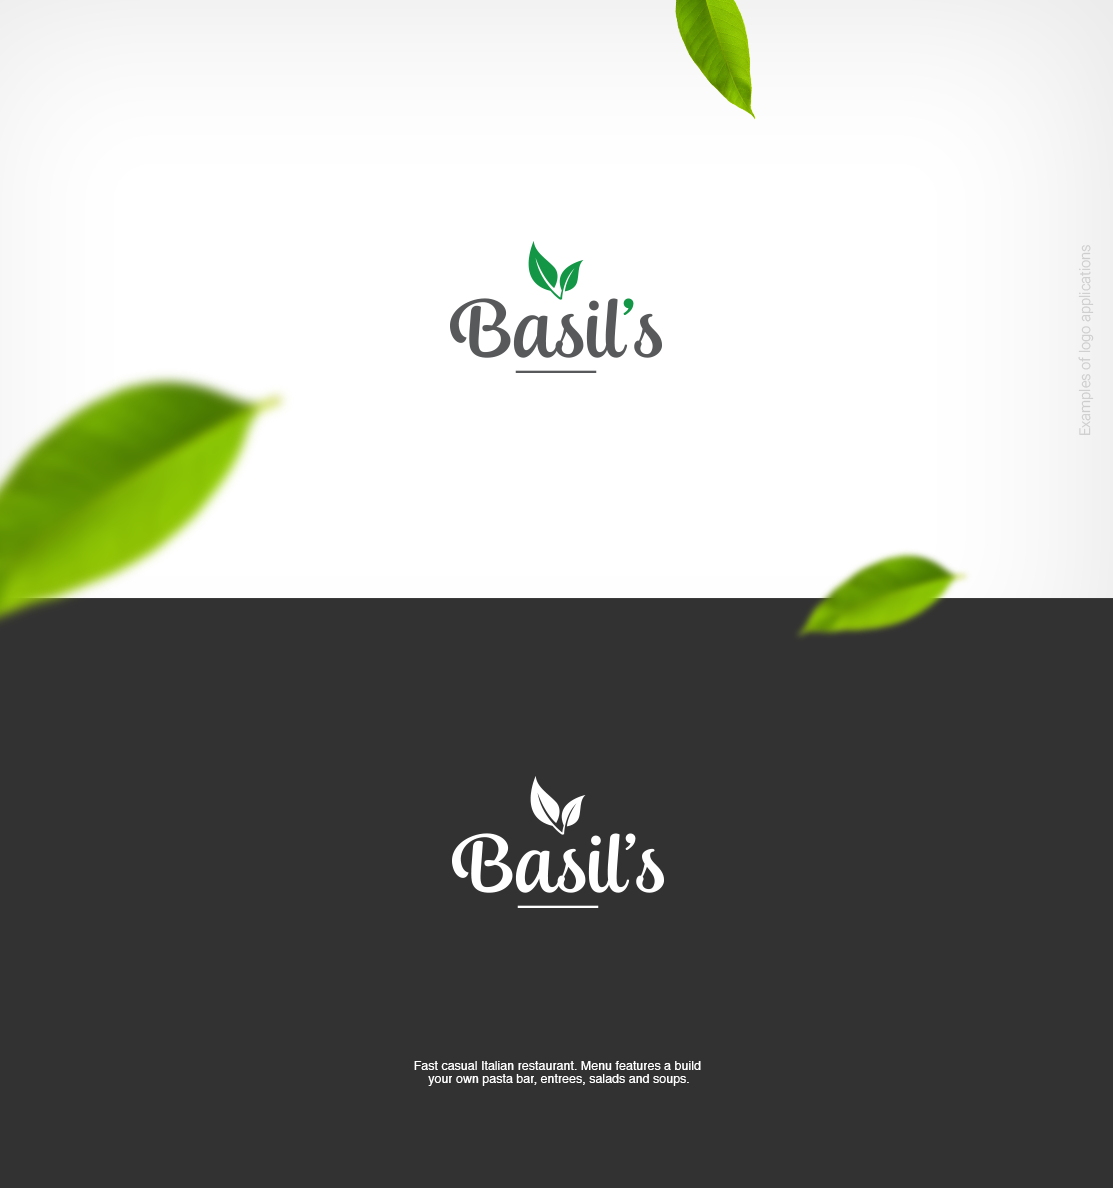 Restaurant Logo Design For Basil S By Felipe Moura Design 18082105